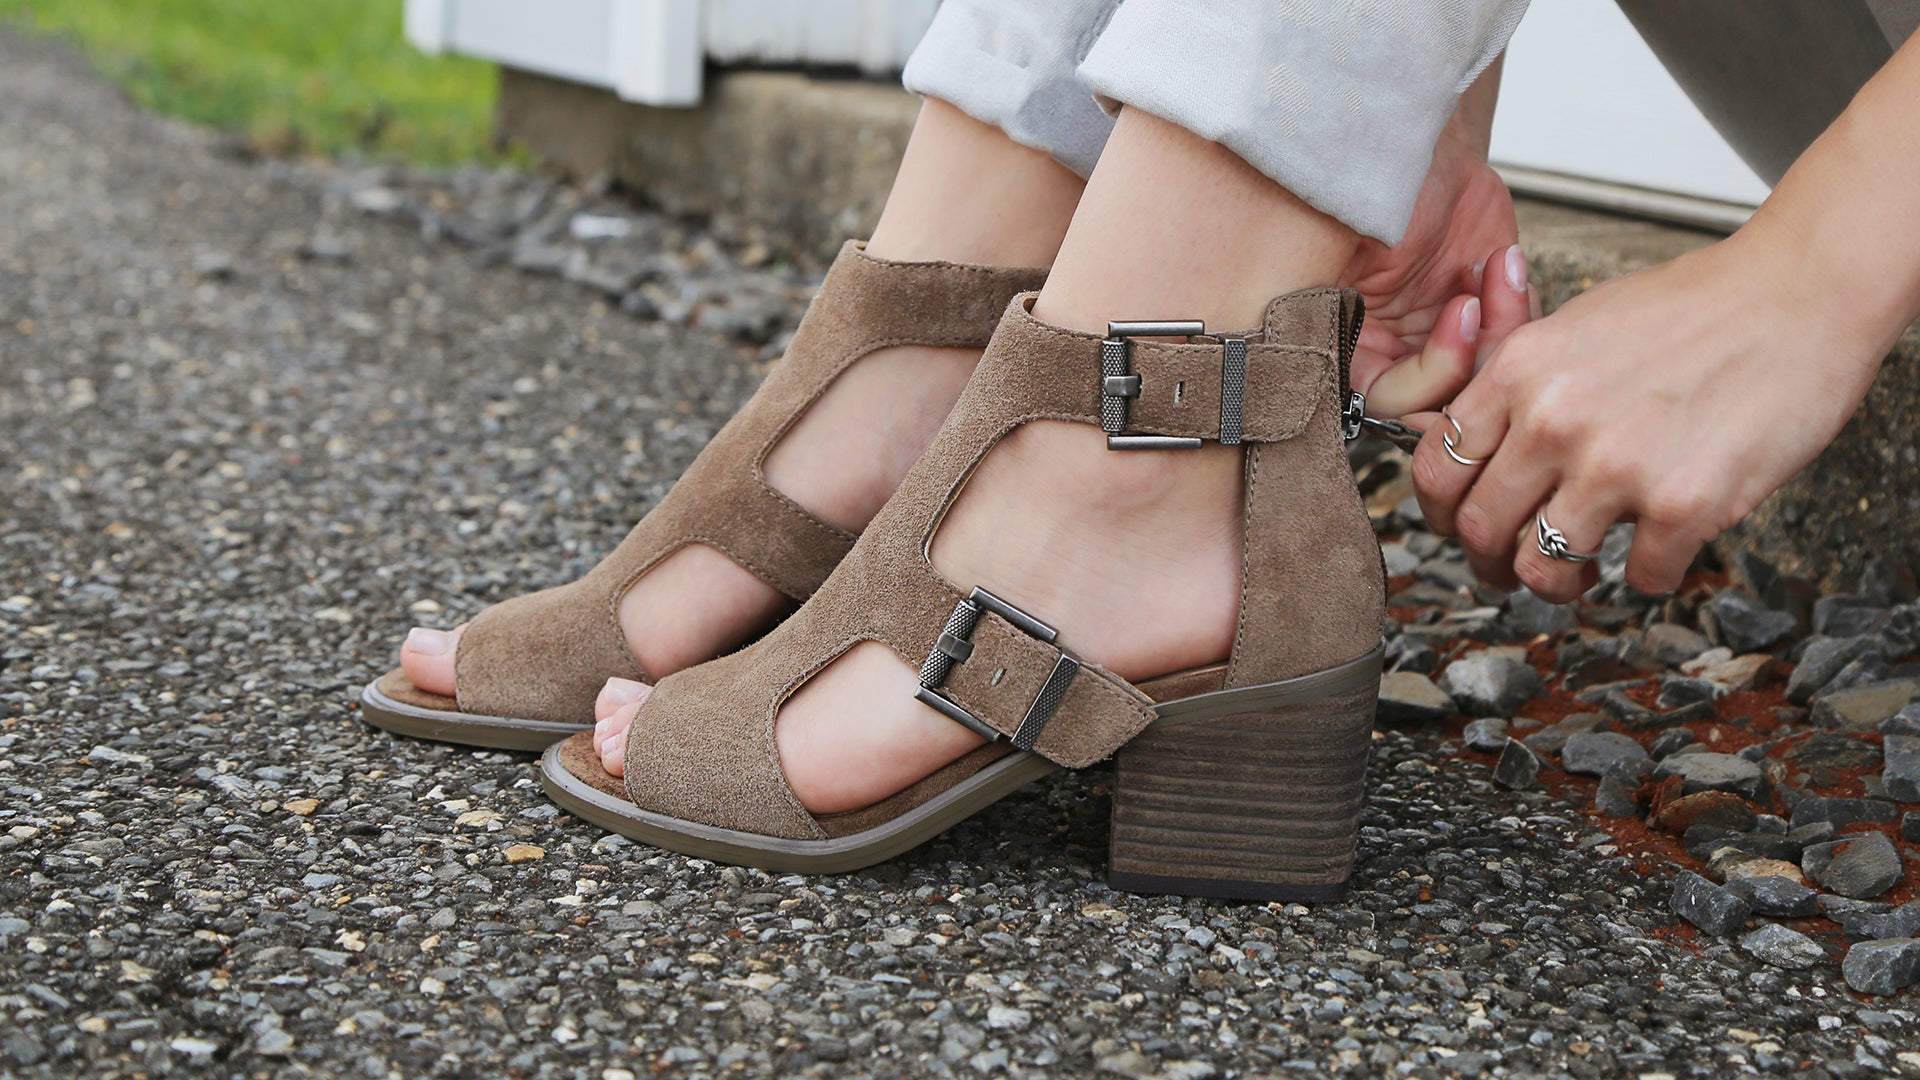 Women's summer booties